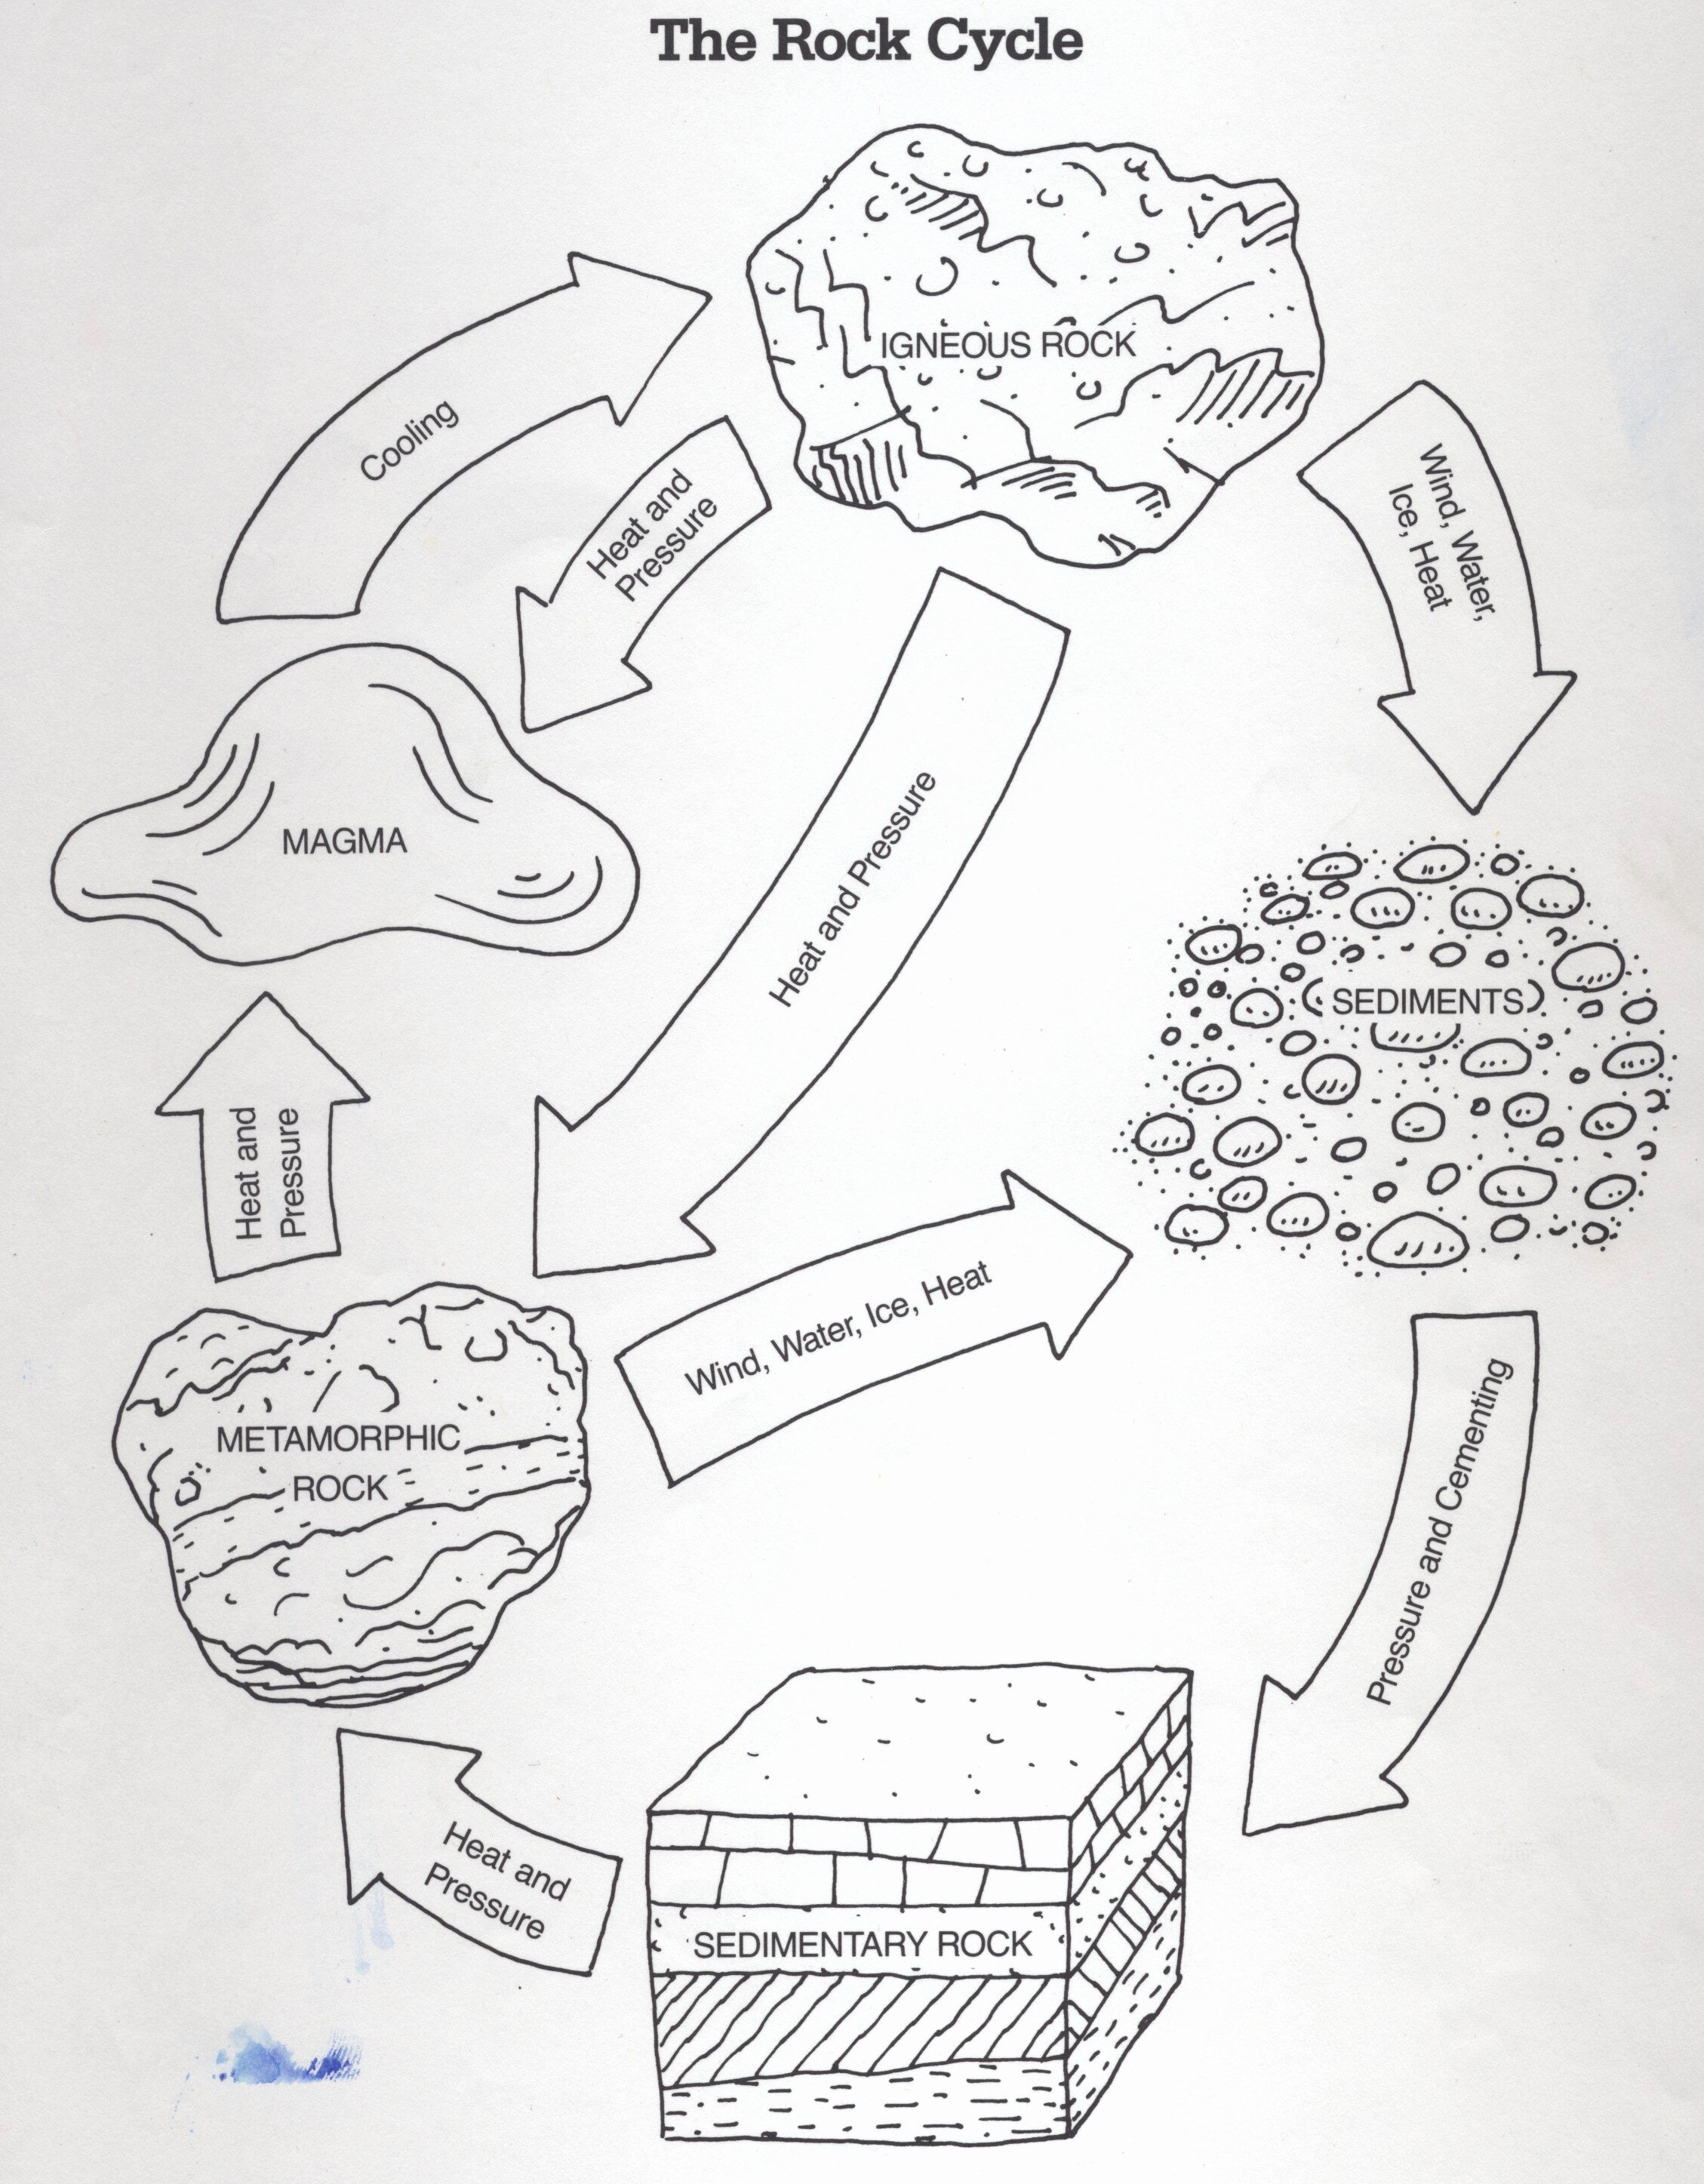 Rock Cycle Diagram Worksheet Lovely Rock Cycle